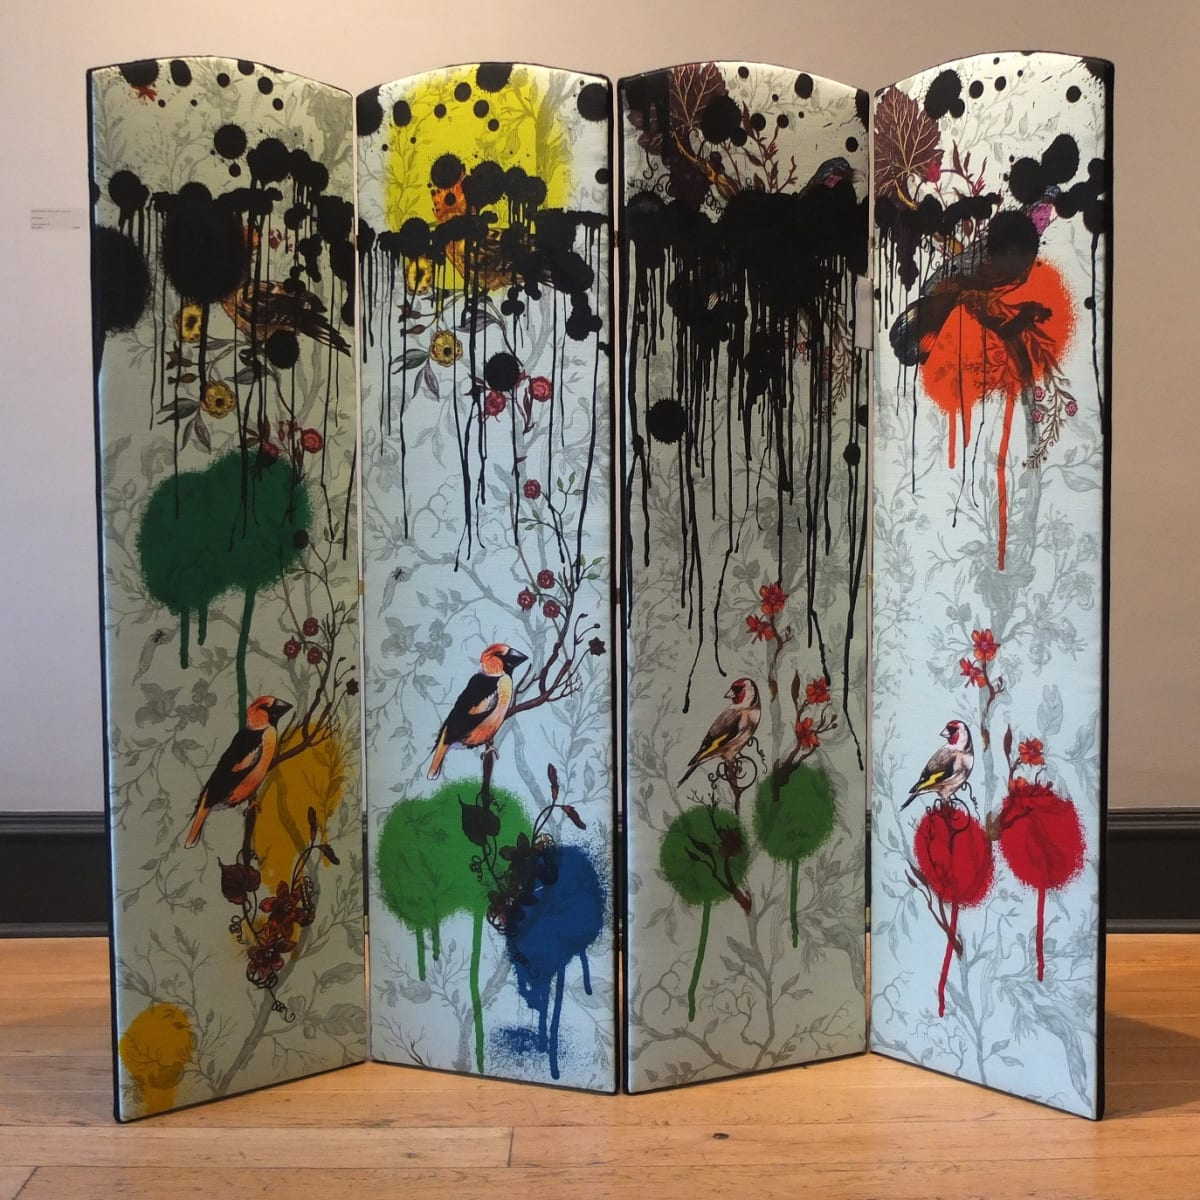 Timorous Beasties Birds and Bees Tag, 2019 folding screen upholstered in Birds N Bees fabric with one-off screen print design 137.5 x 148 cm (4 panels, 37 cm width each)